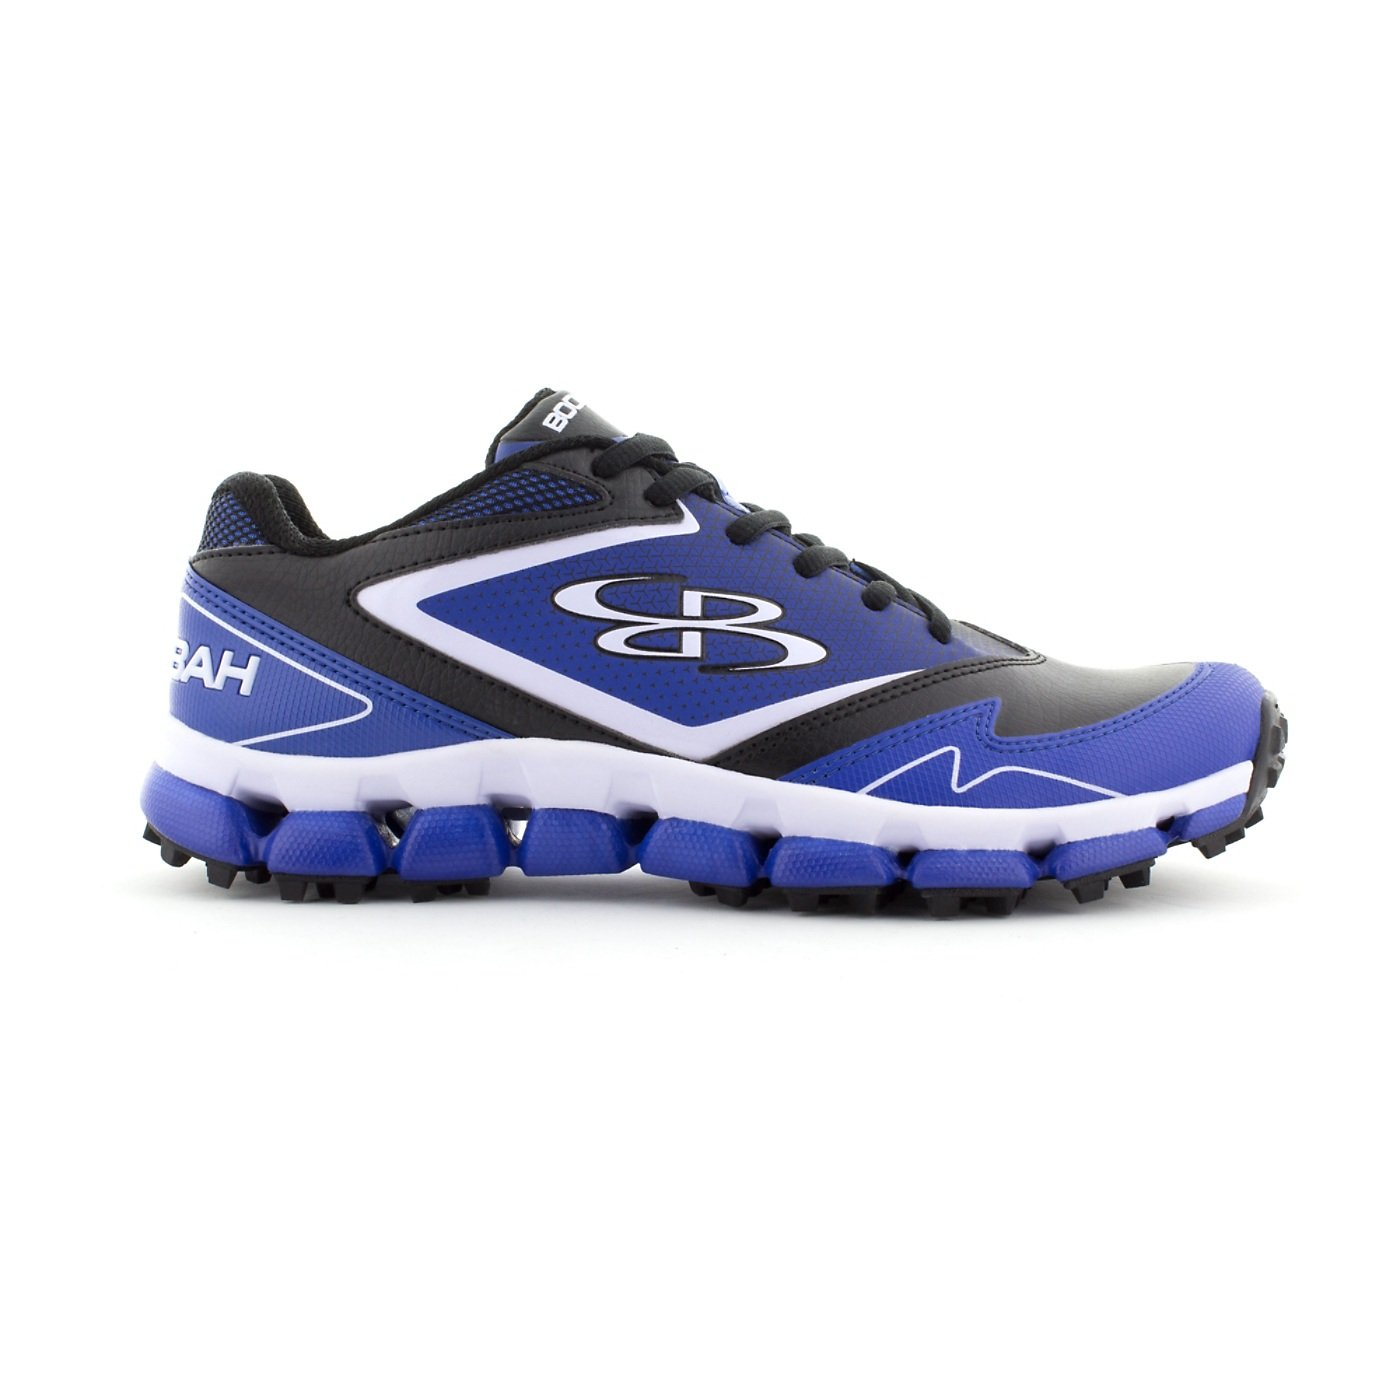 Boombah Women's A-Game Turf Black/Royal Blue - Size 10